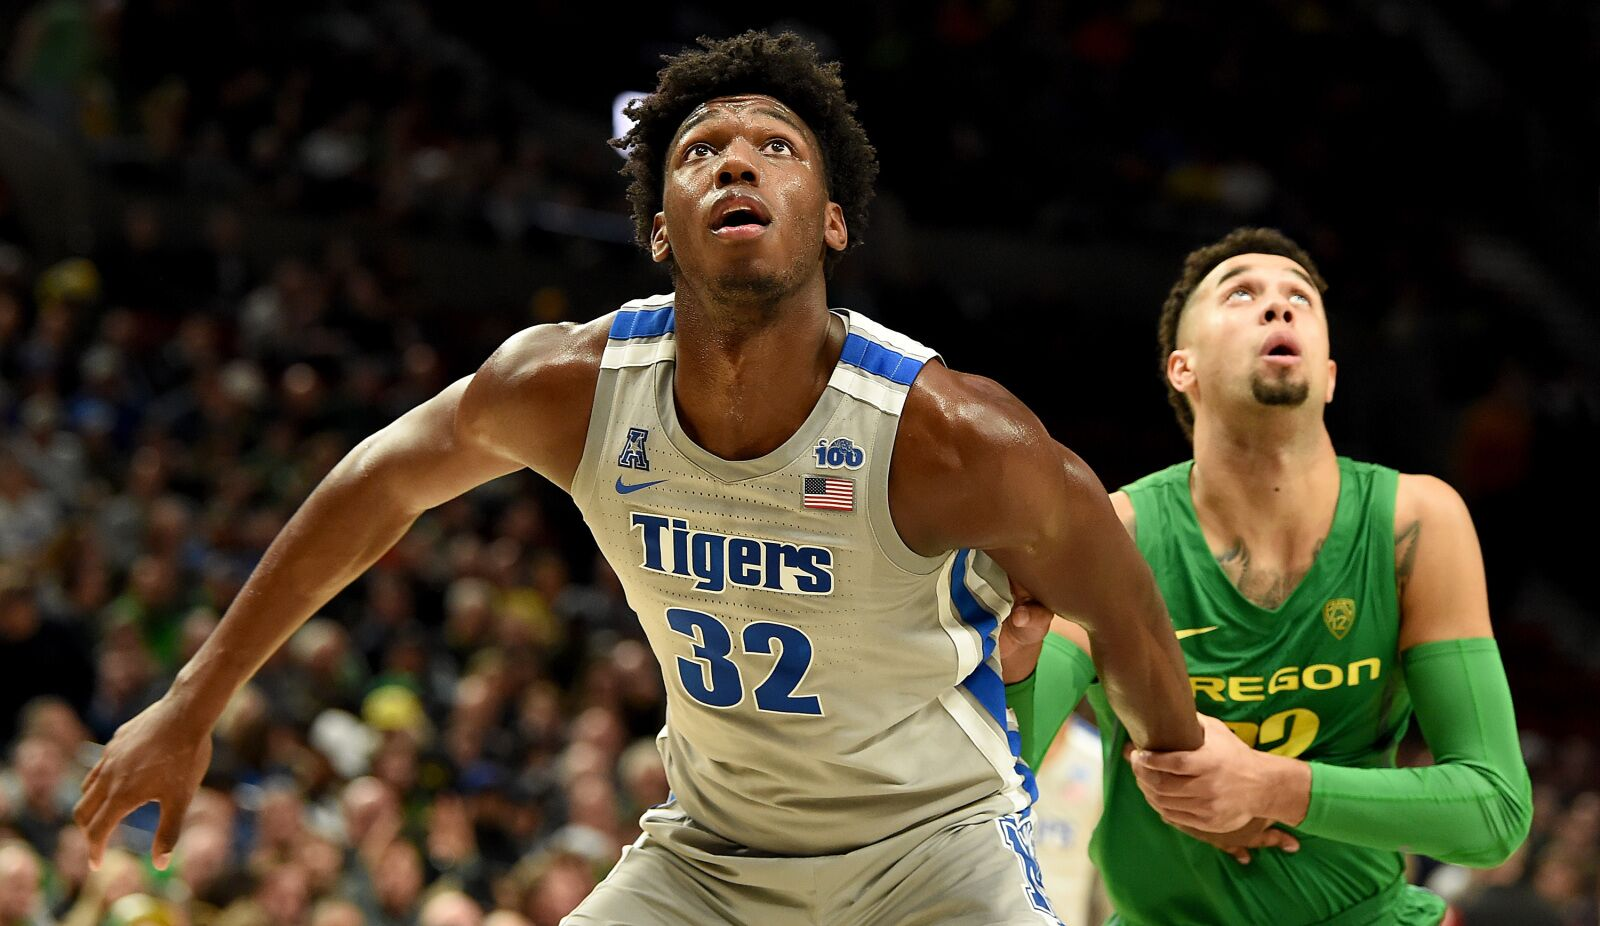 Memphis' James Wiseman suspended 12 games, must donate $11,000 to charity